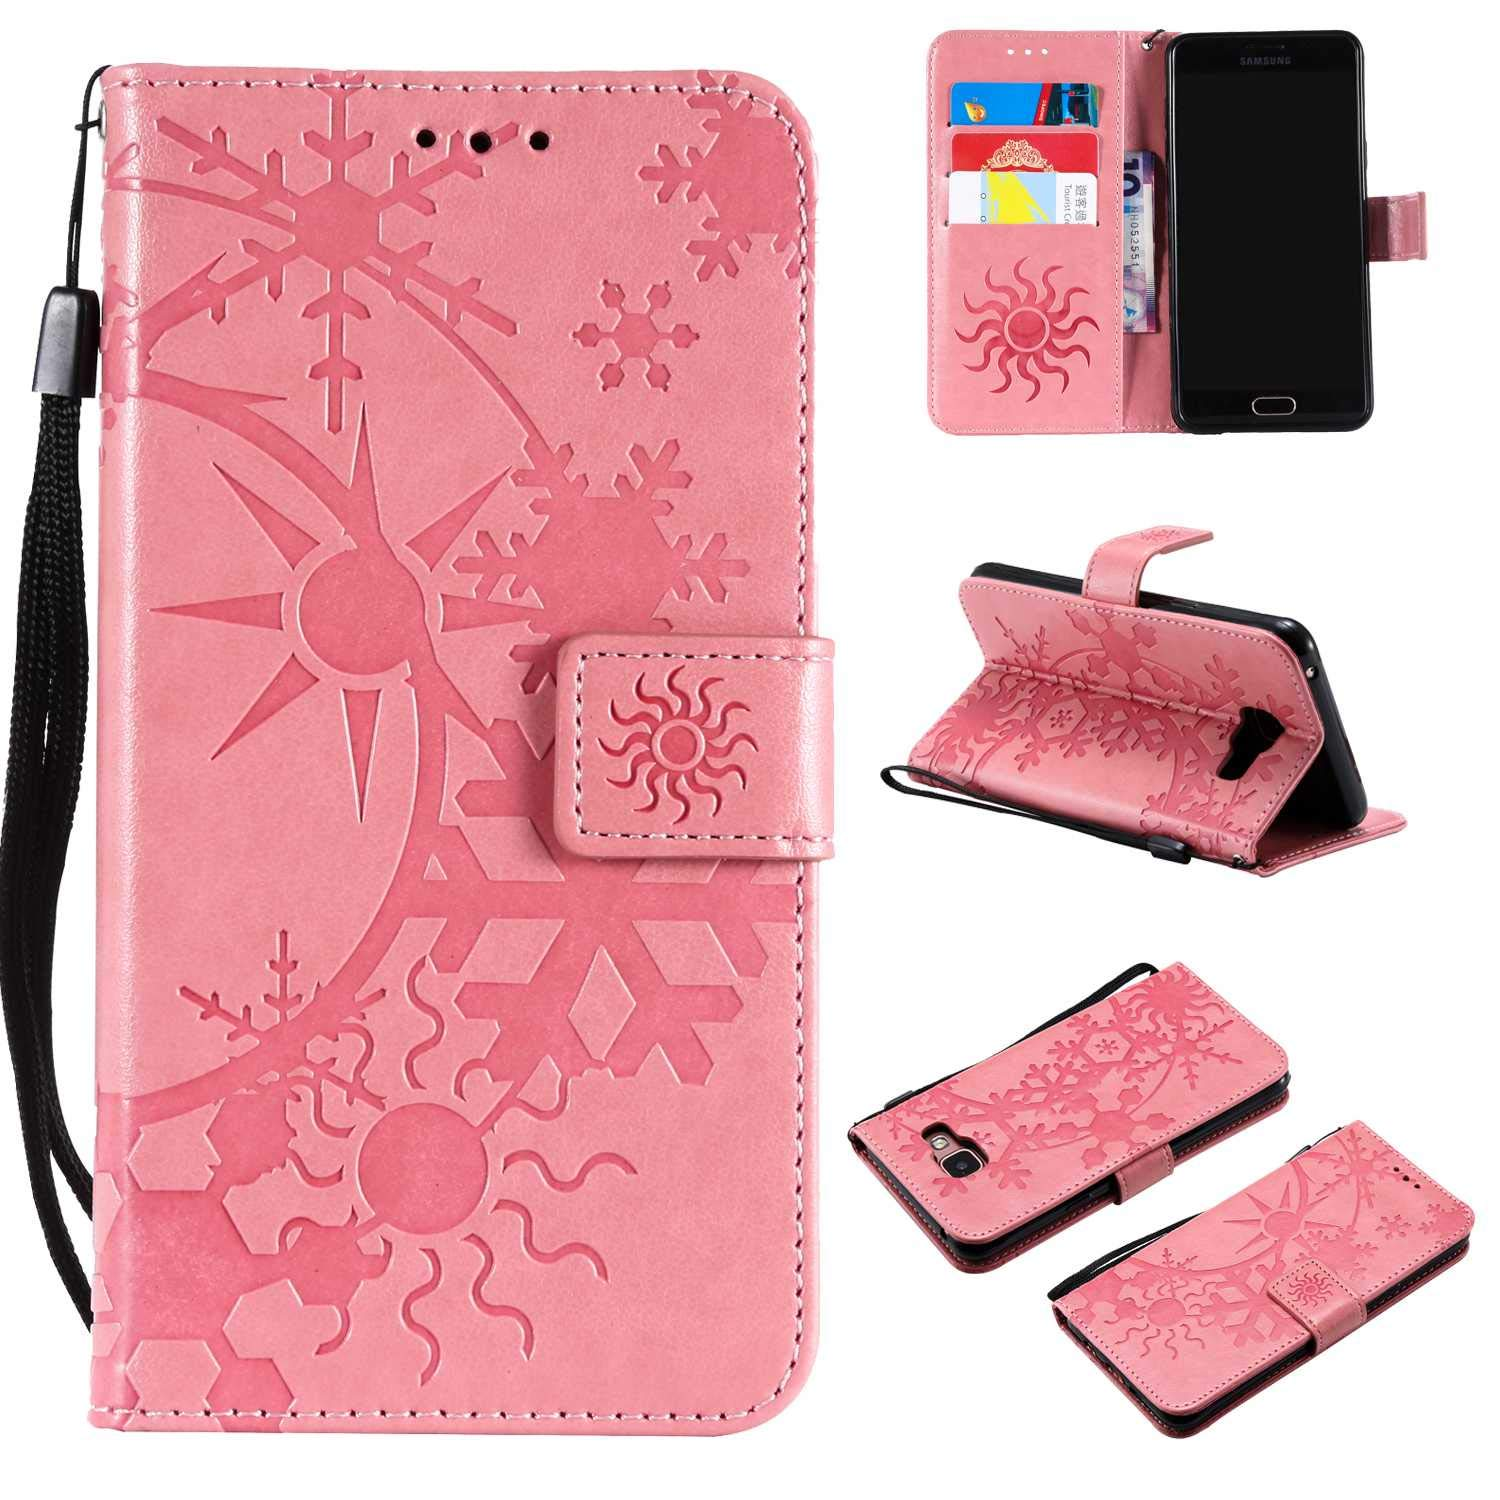 CUSKING Galaxy A5 2017 Leather Wallet Case with Card Holder and Stand Function, Magnetic Flip Folio Slime Protective Cover for Samsung Galaxy A5 2017 - Pink